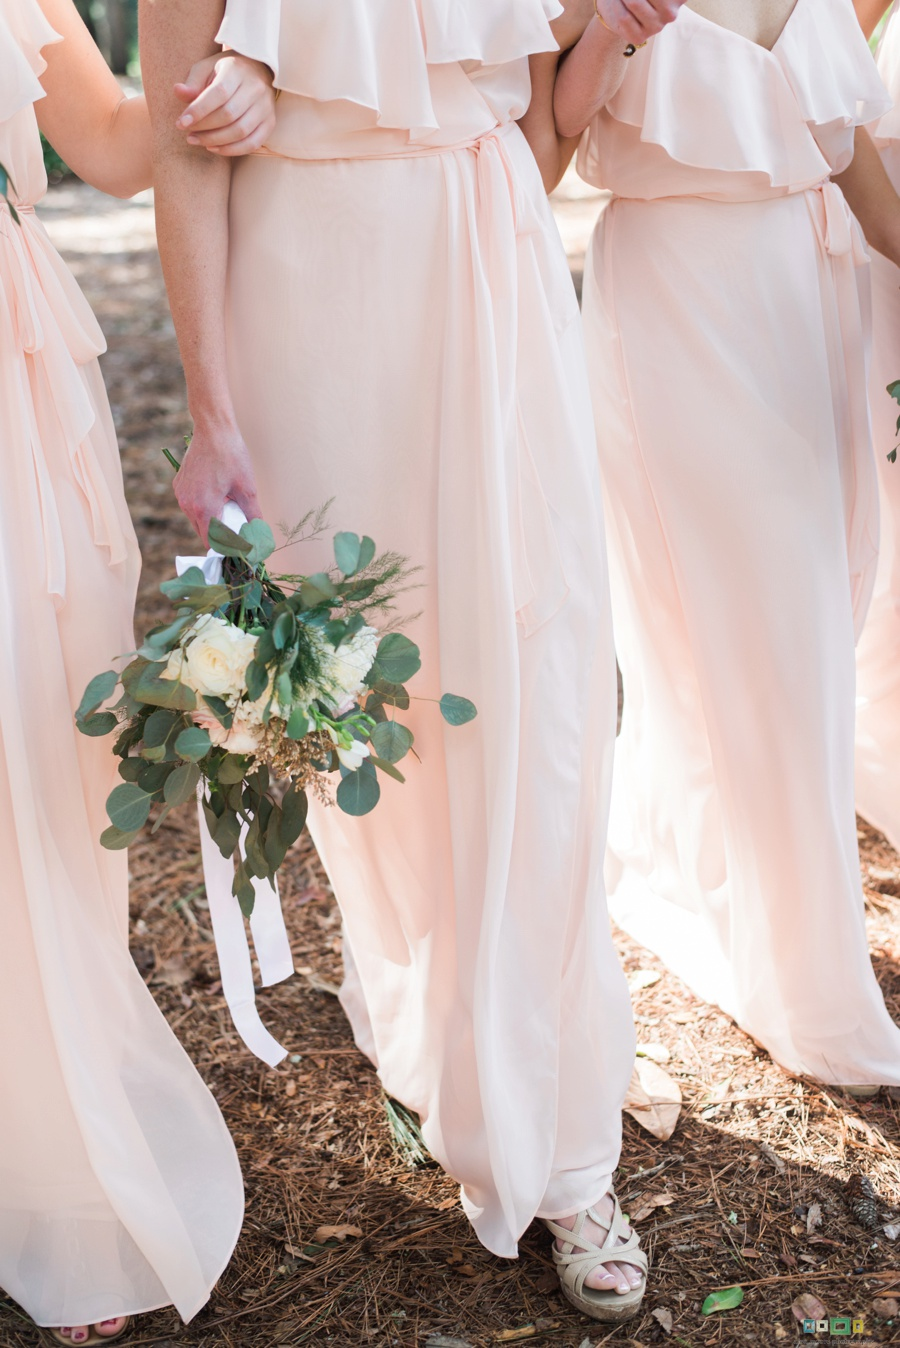 alea-moore-photography-Daufuskie-Island-wedding-ivory-and-beau-bridal-boutique-dakota-nicole-miller-rebecca-schoneveld-marisol-classic-southern-wedding-savannah-wedding-dresses-savannah-bridal-boutique-savannah-weddings-savannah-bridal-gowns-12.jpg